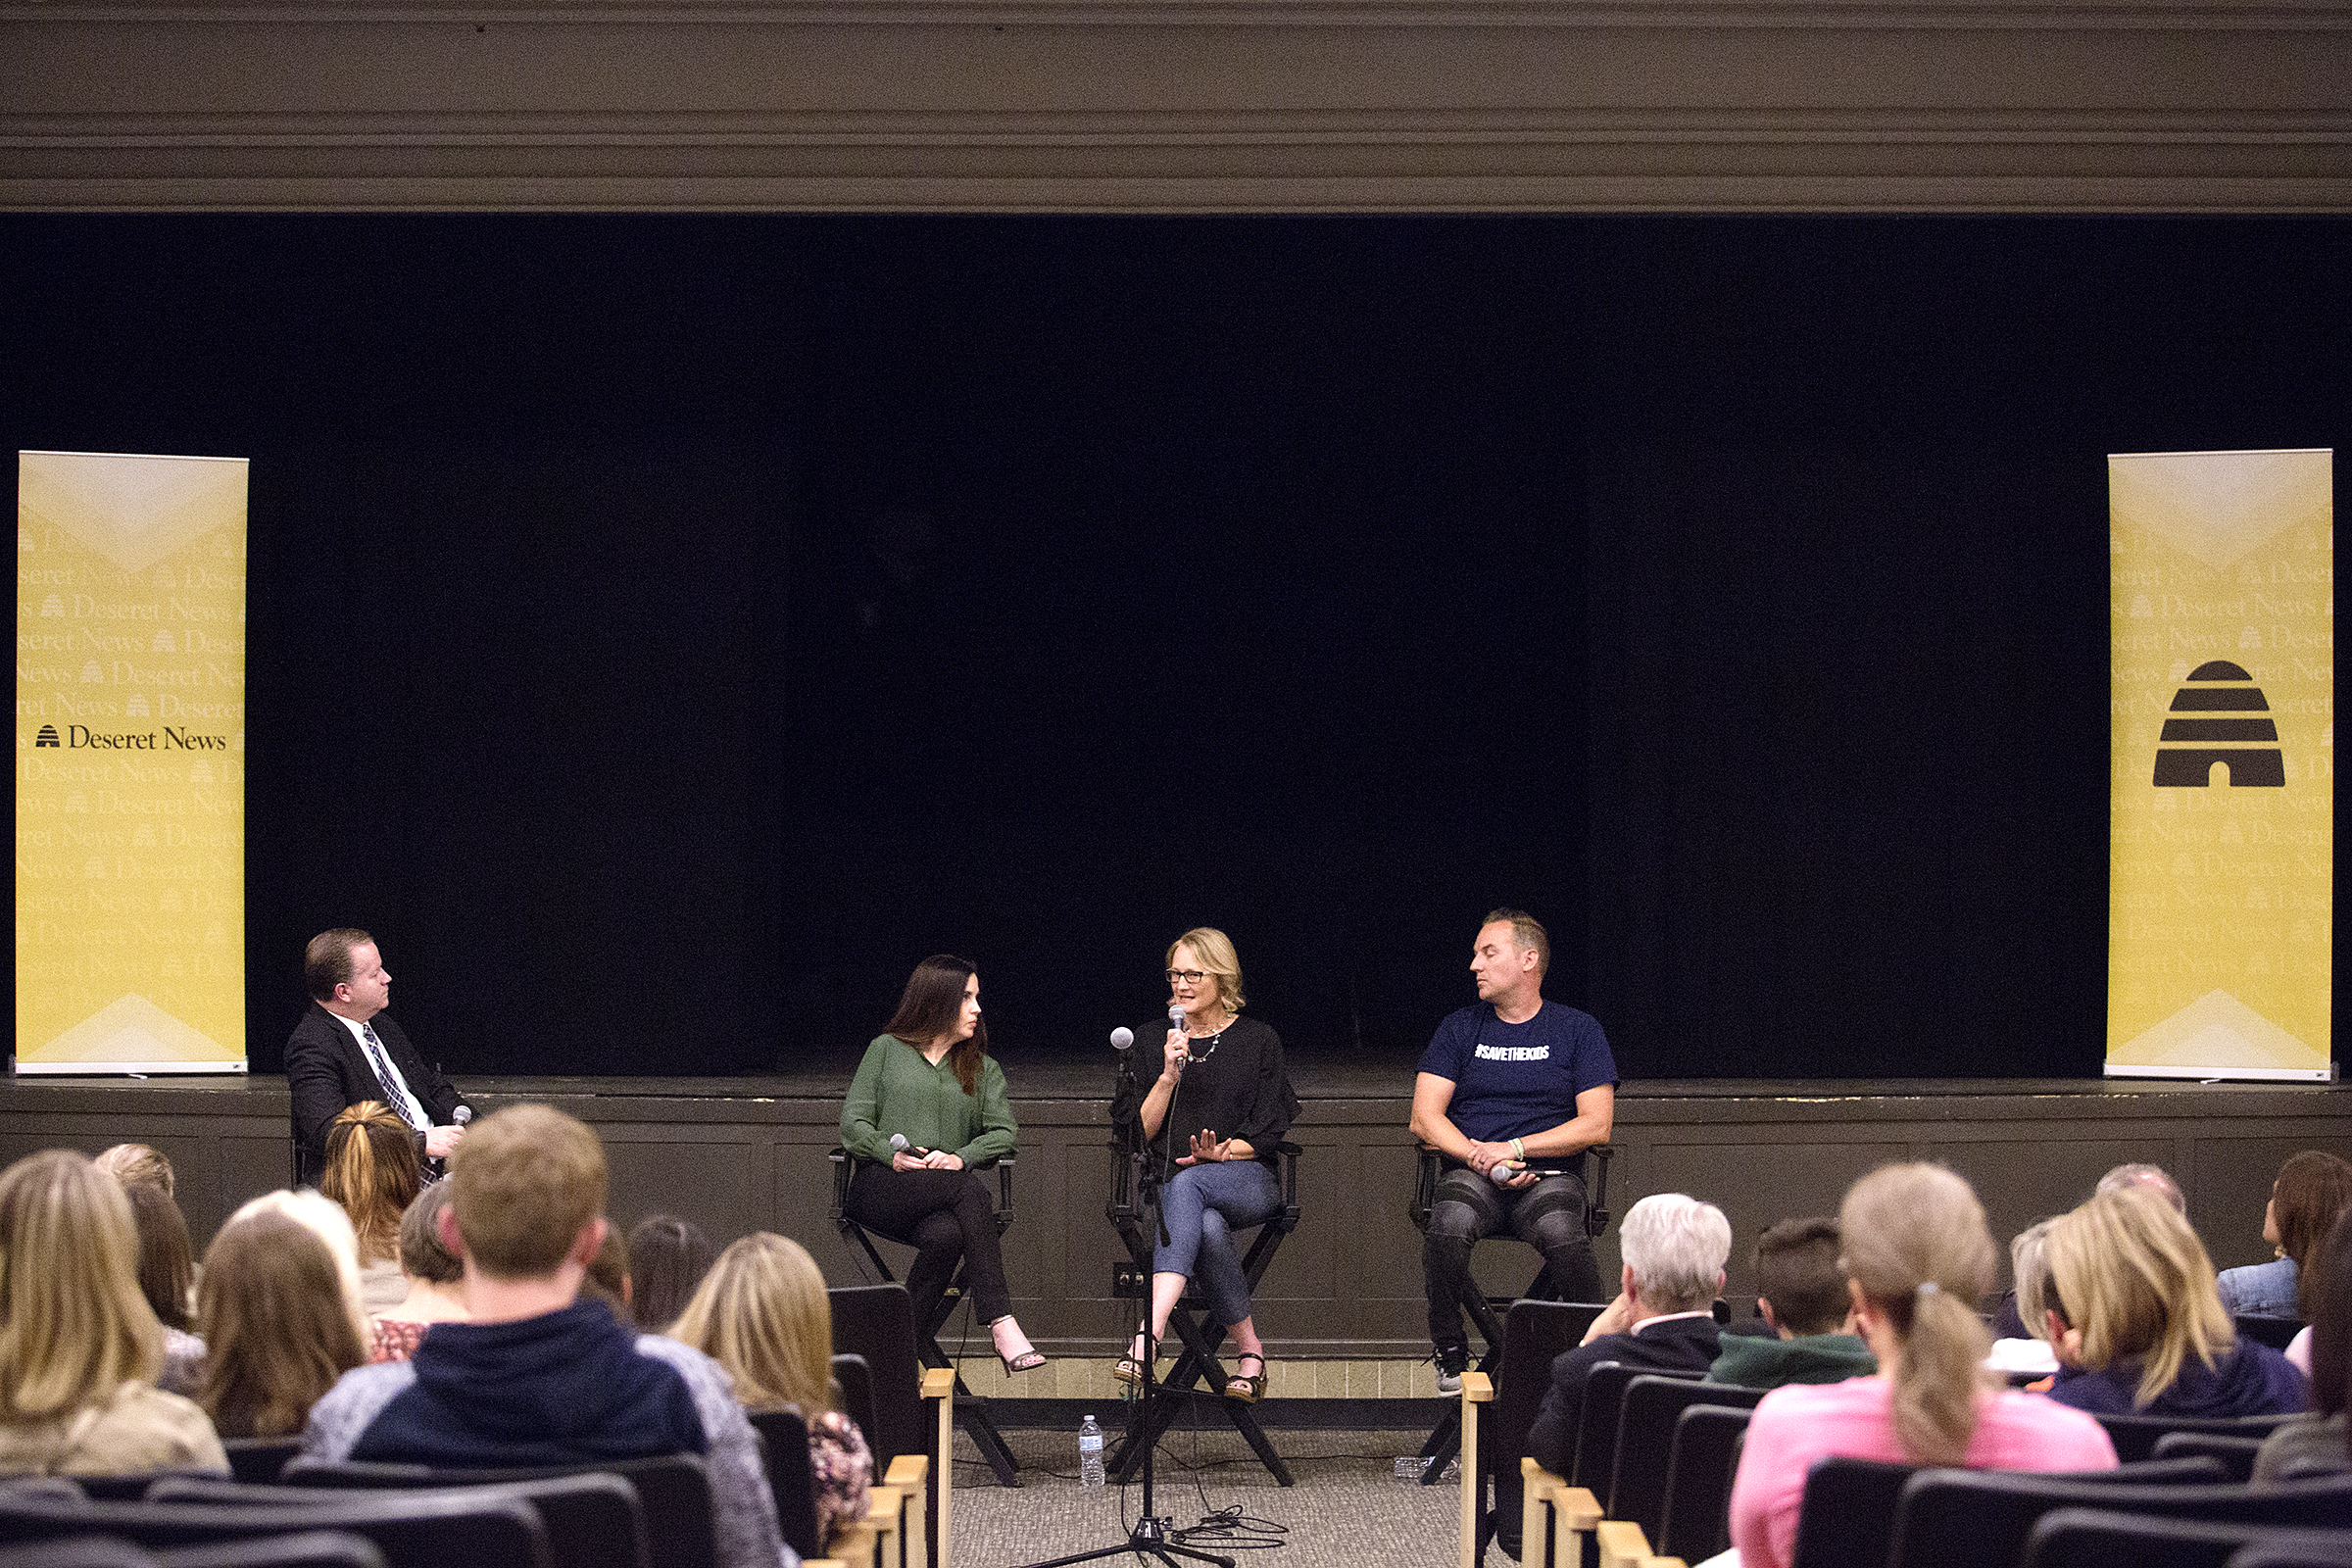 FILE - Deseret News hosted a film screening of 'Angst' at the Jim Santy Auditorium in Park City, Utah, Tuesday, May 29, 2018.